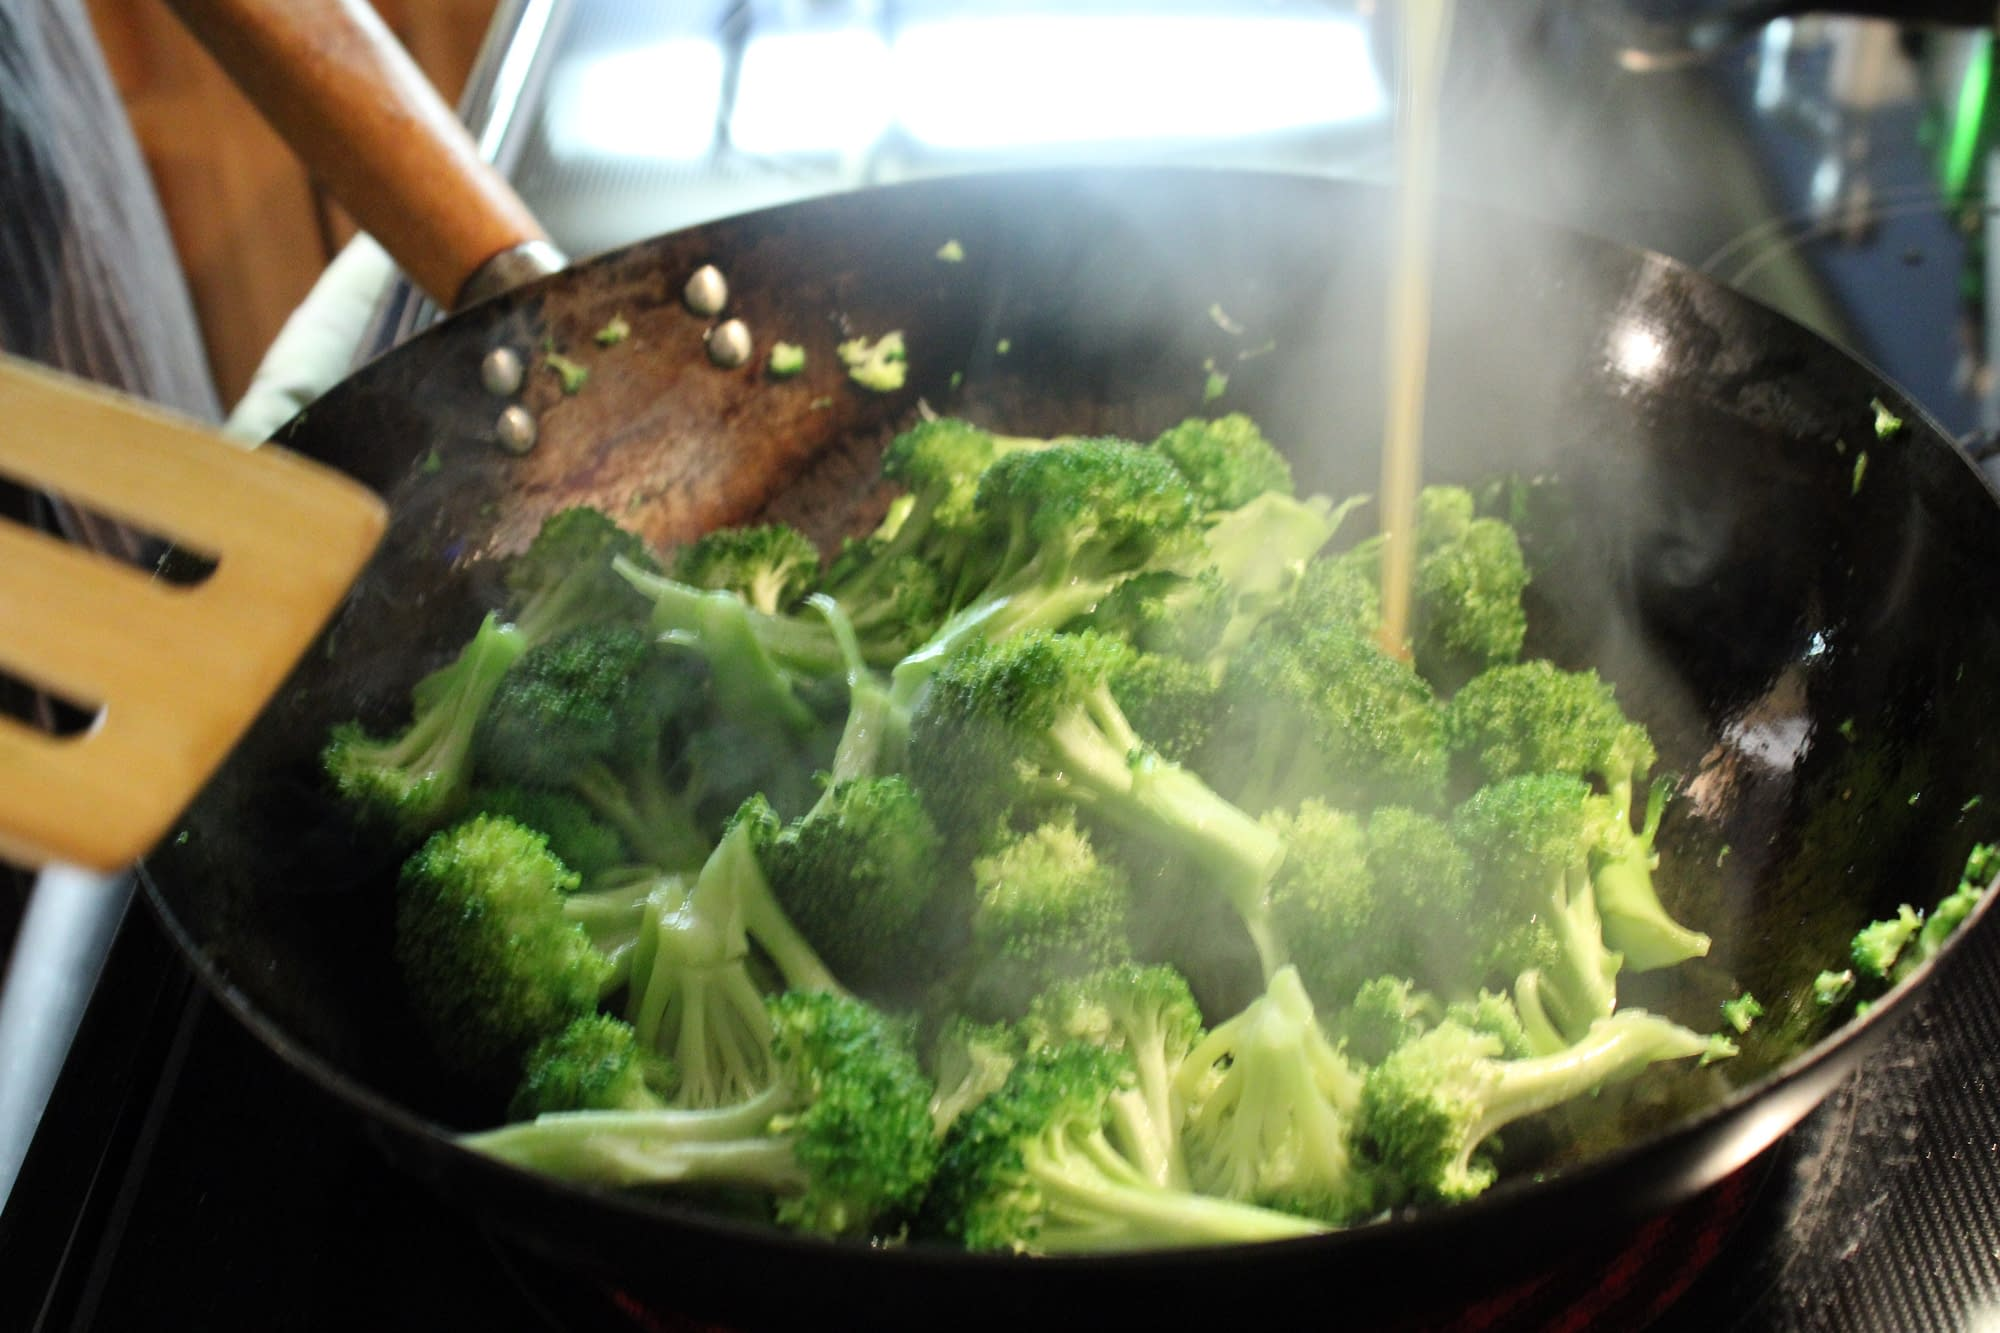 Cooking broccoli in a wok.